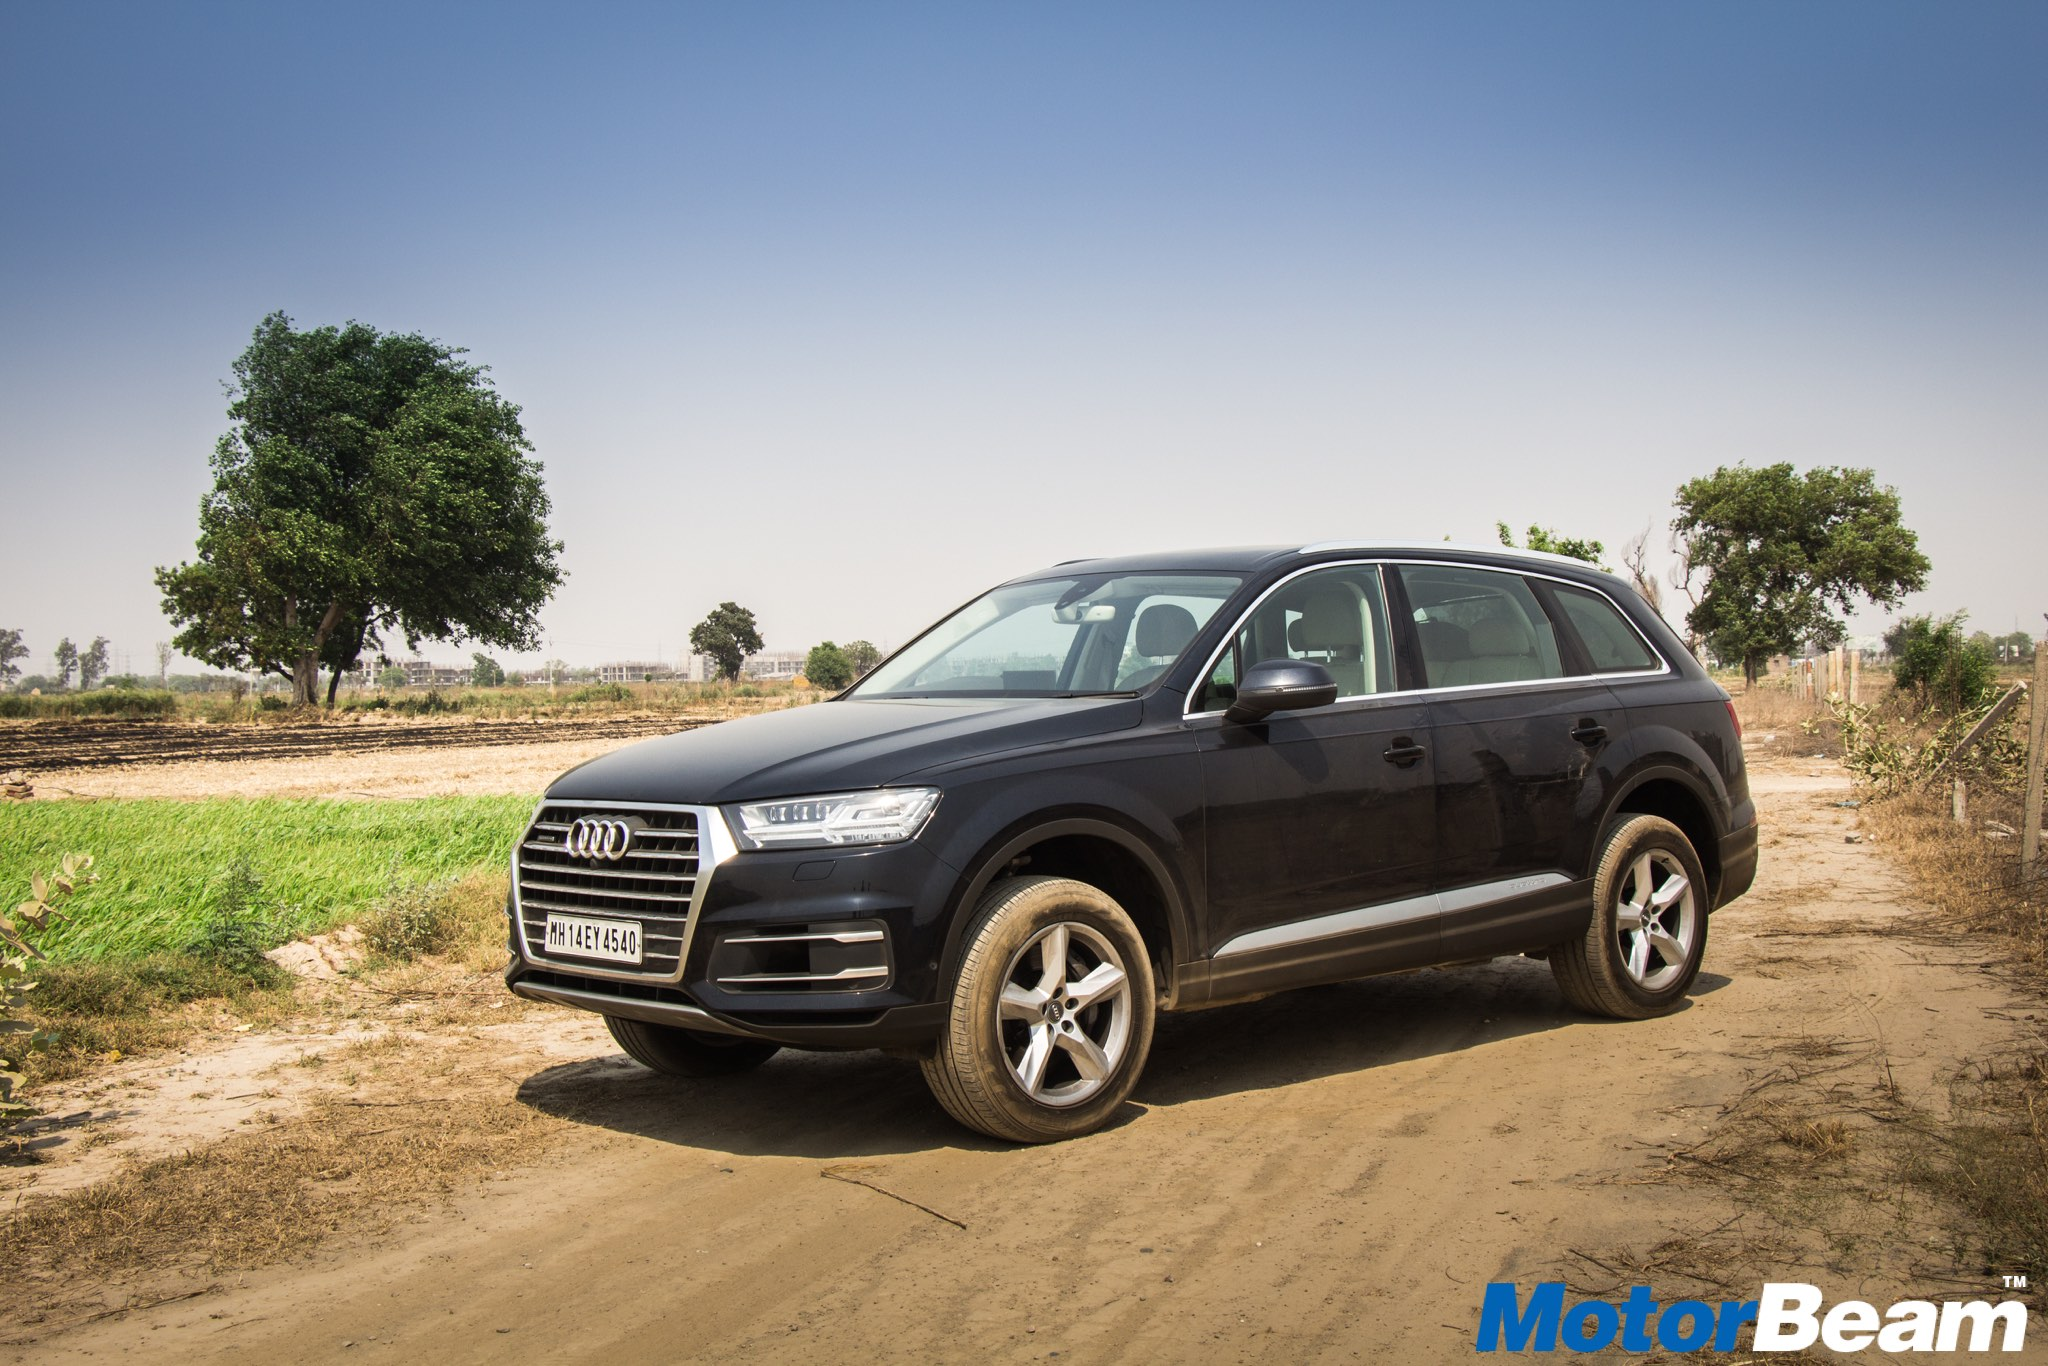 2016 Audi Q7 Image Gallery Motorbeam Indian Car Bike News Review